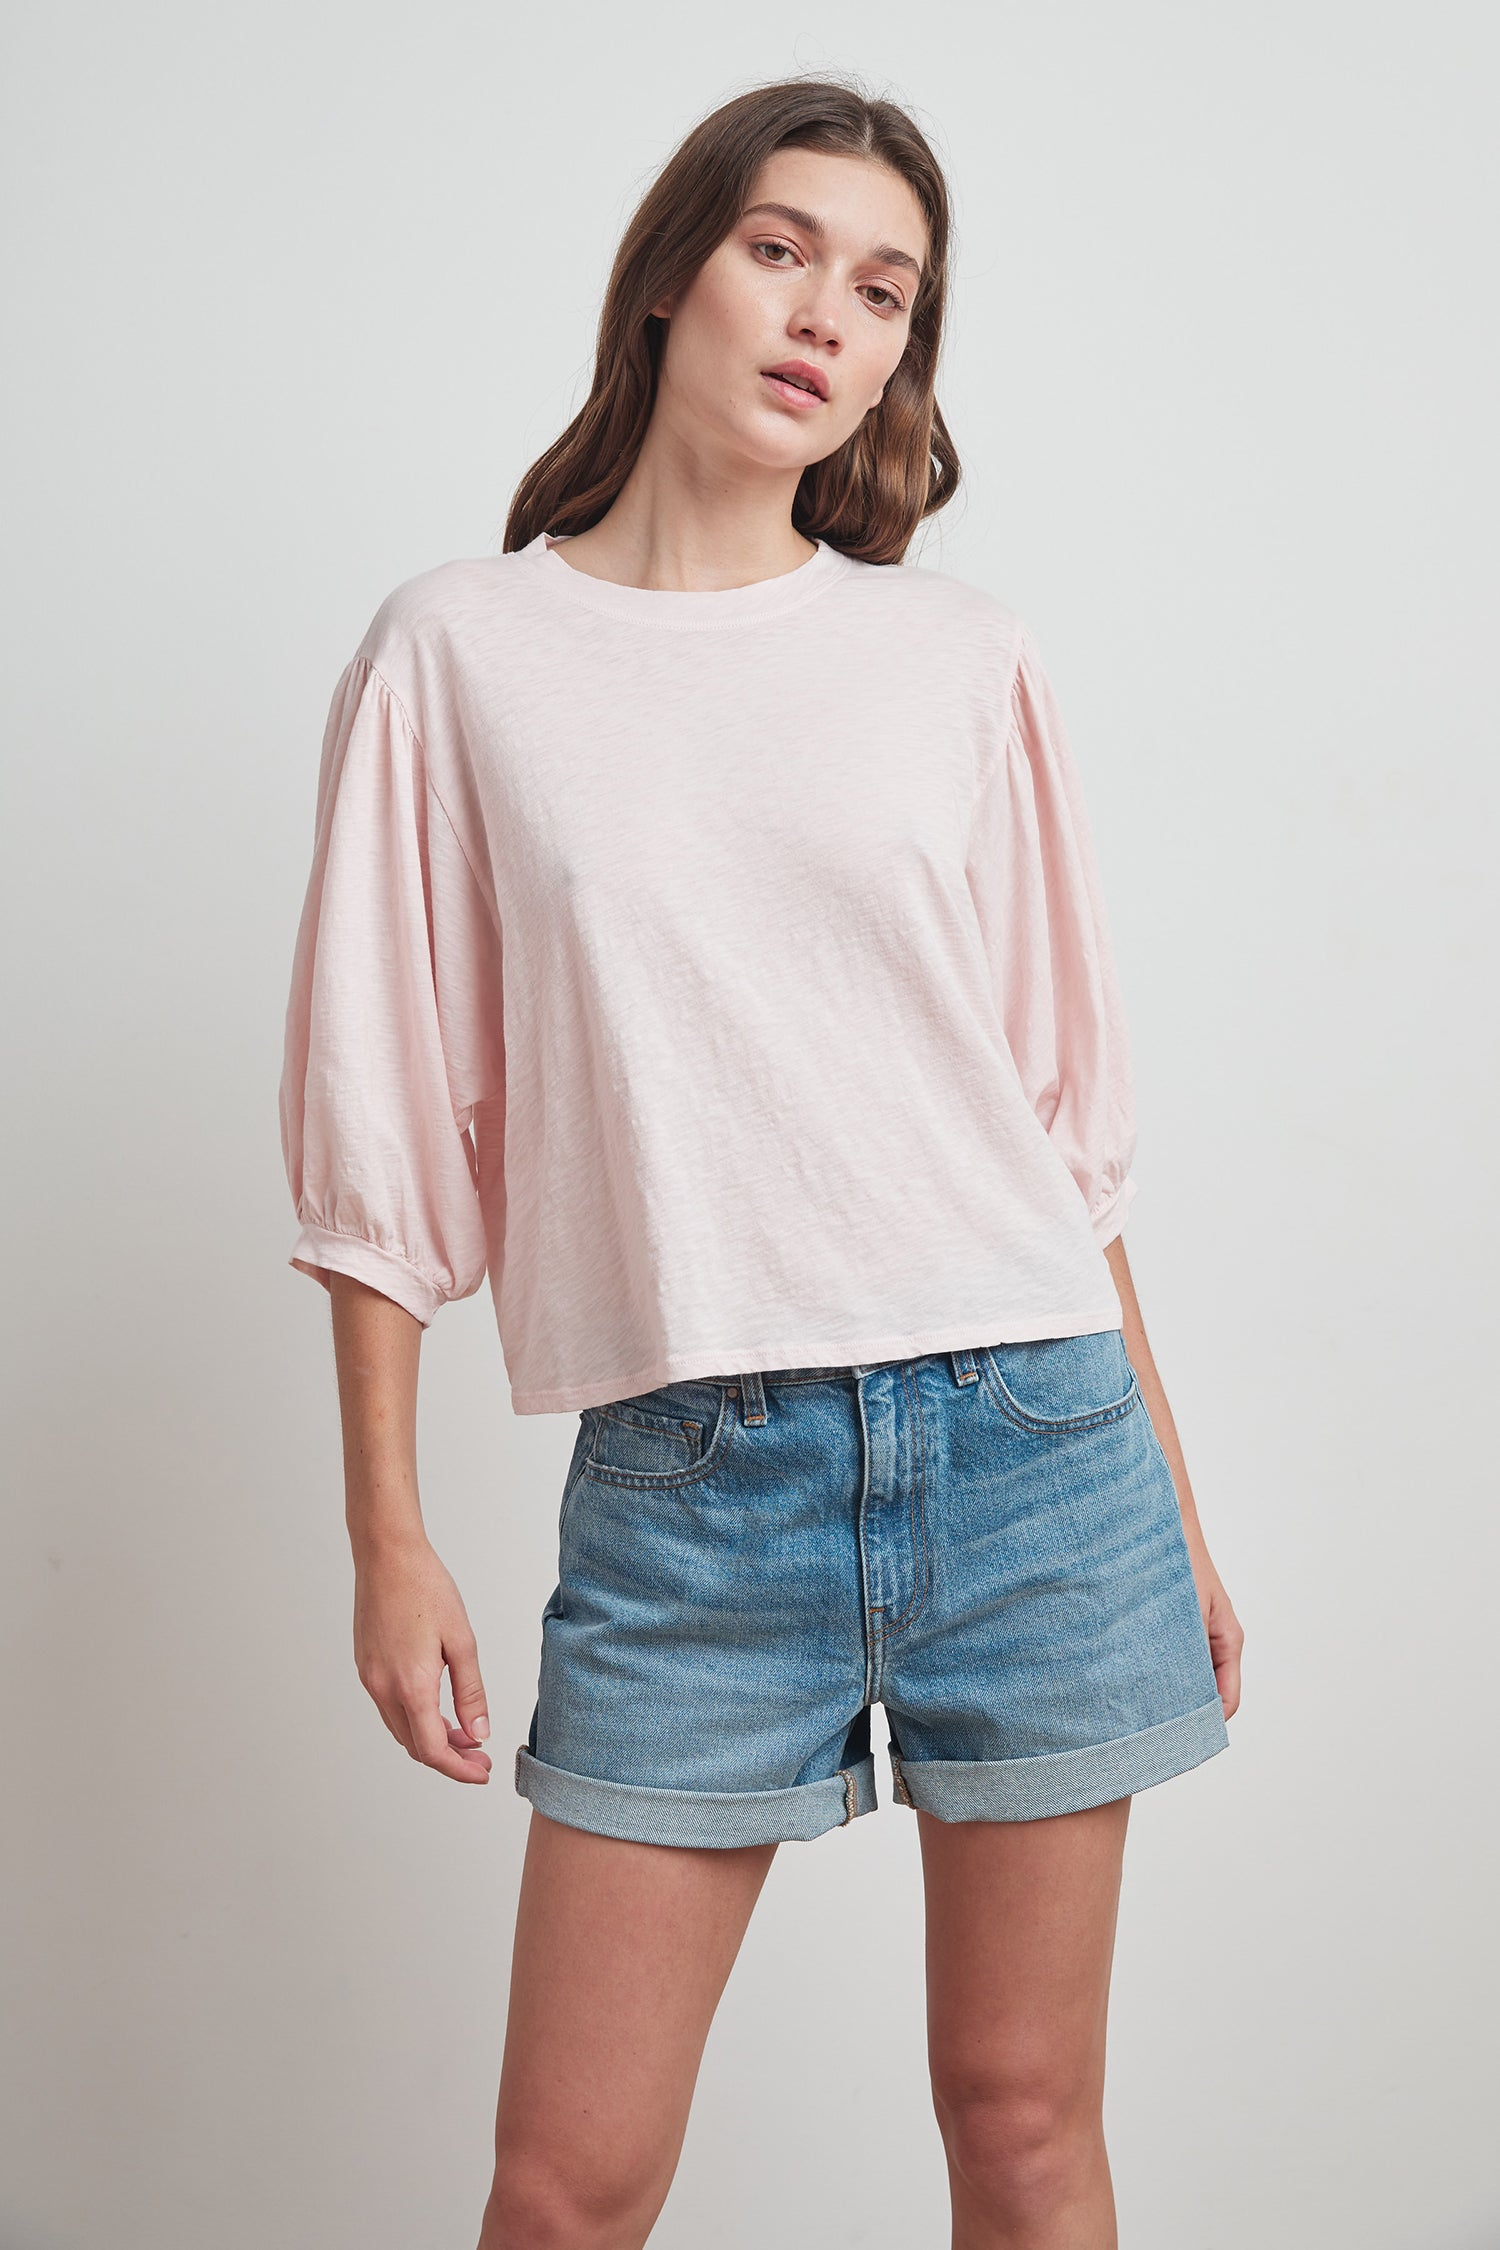 AMARA COTTON SLUB 3/4 SLEEVE TEE IN SHELL